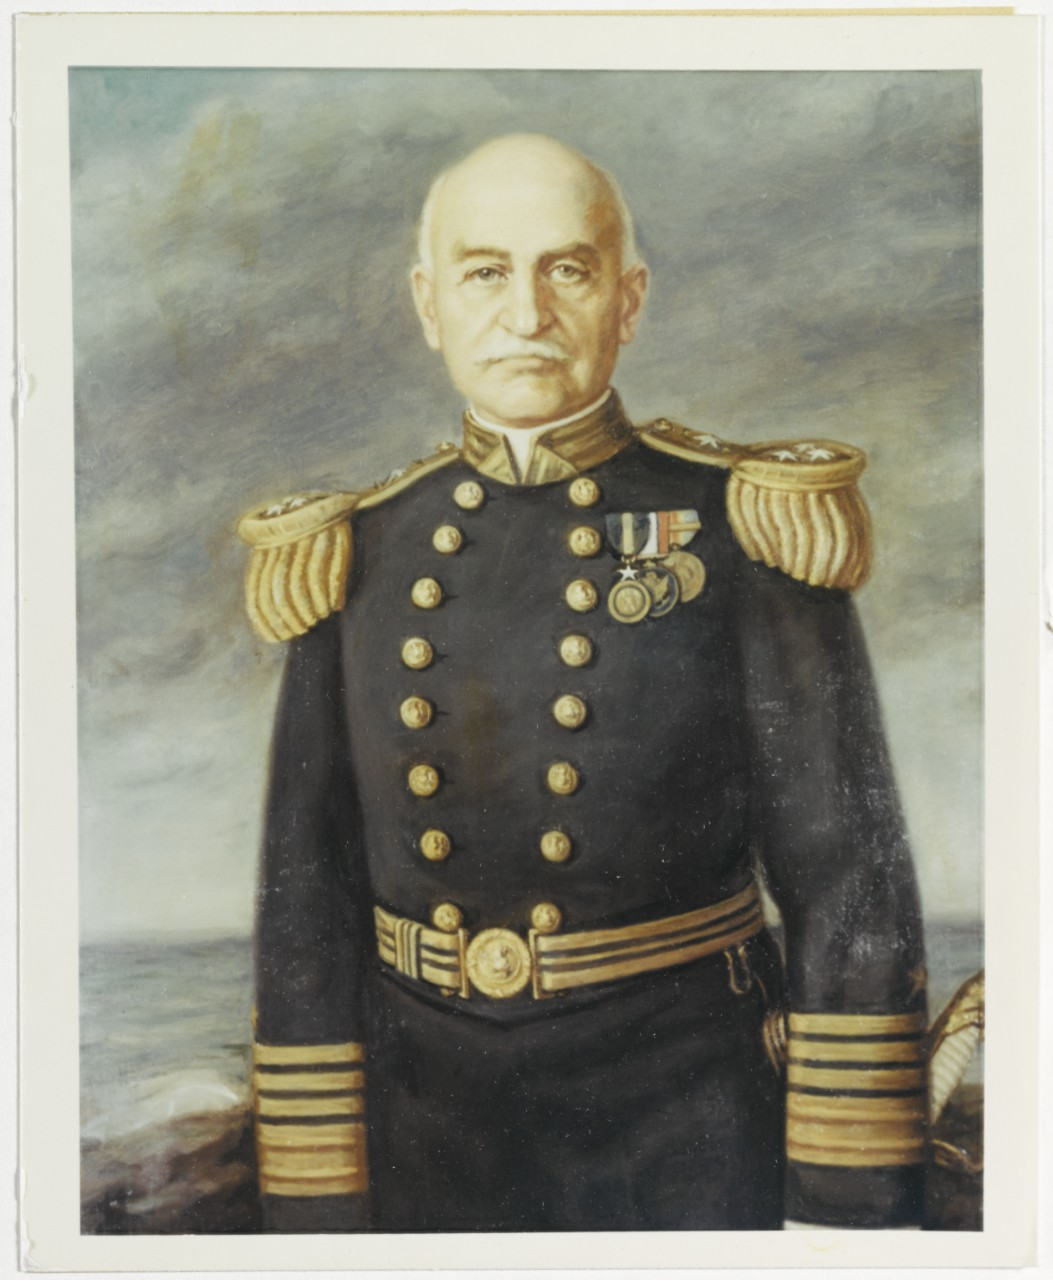 Photo #: NH 77665-KN Admiral William S. Benson, USN